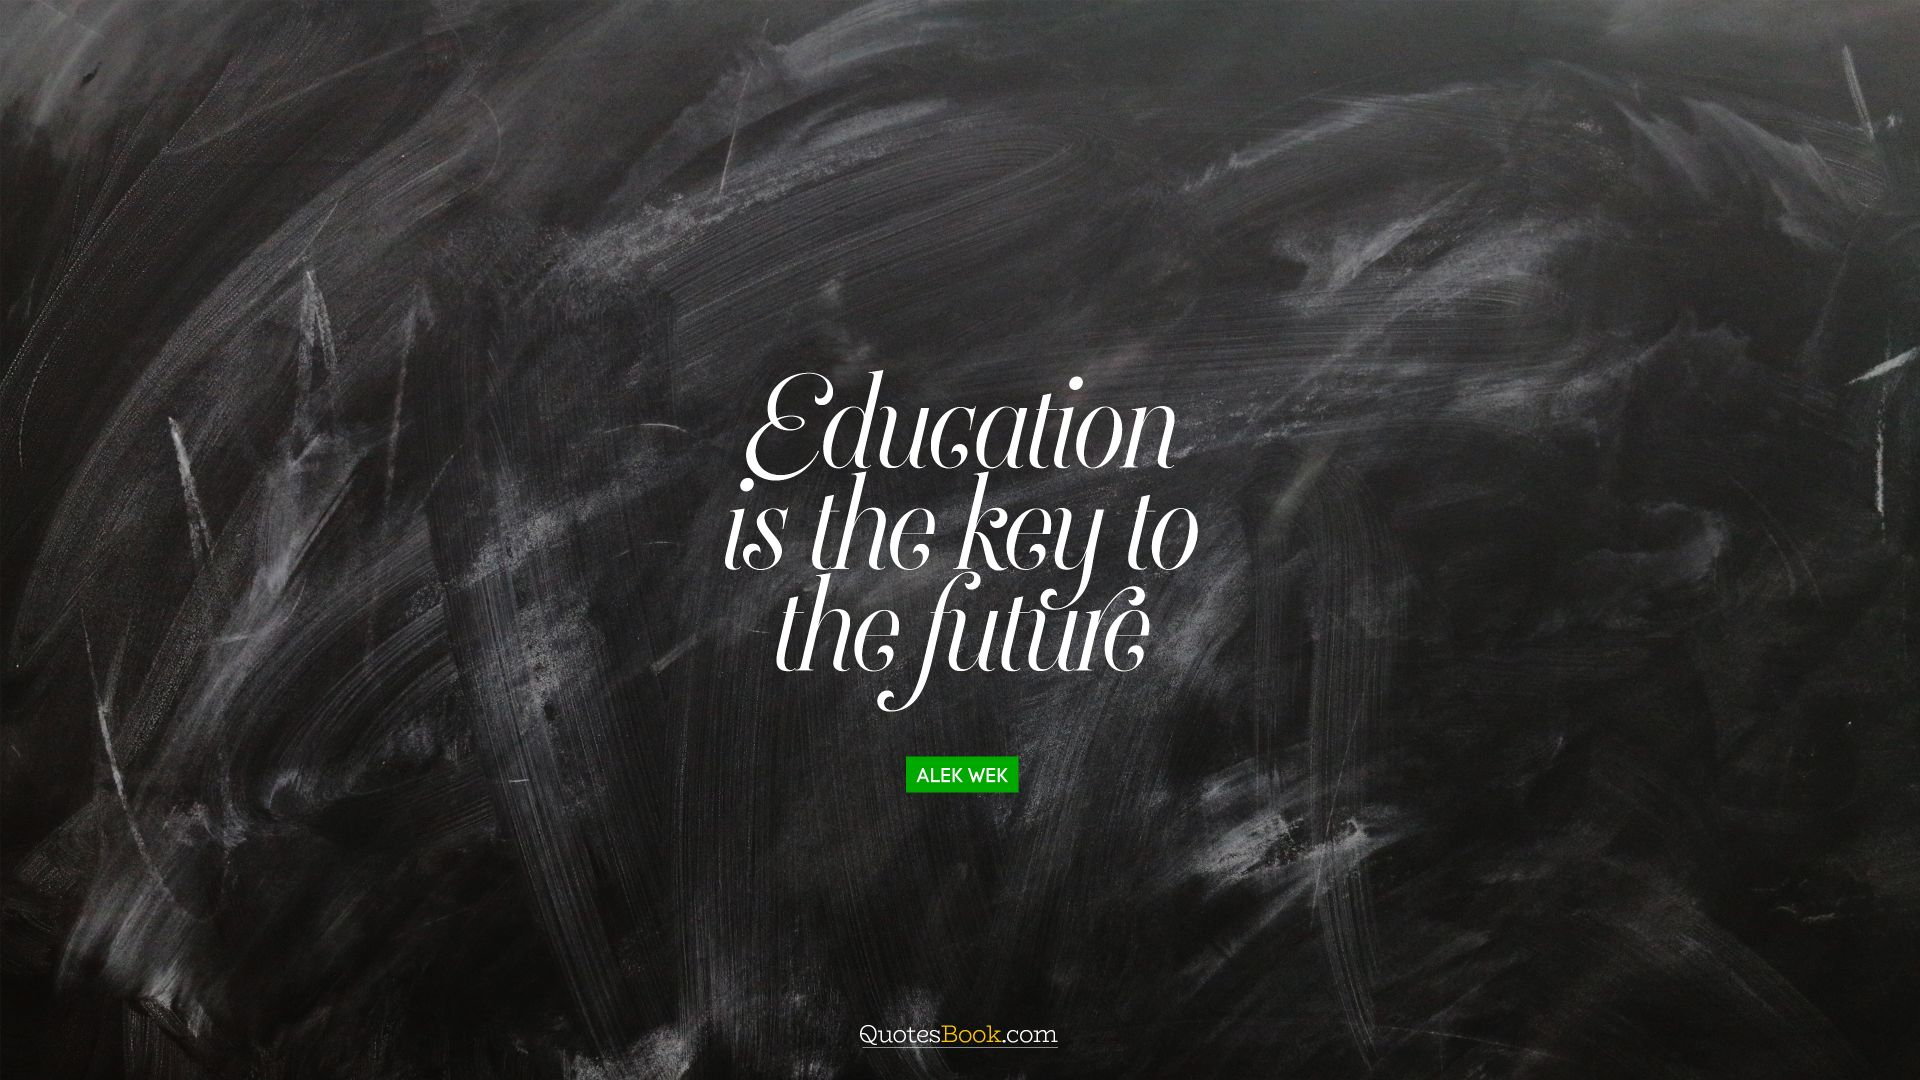 Education is the key to the future. - Quote by Alek Wek